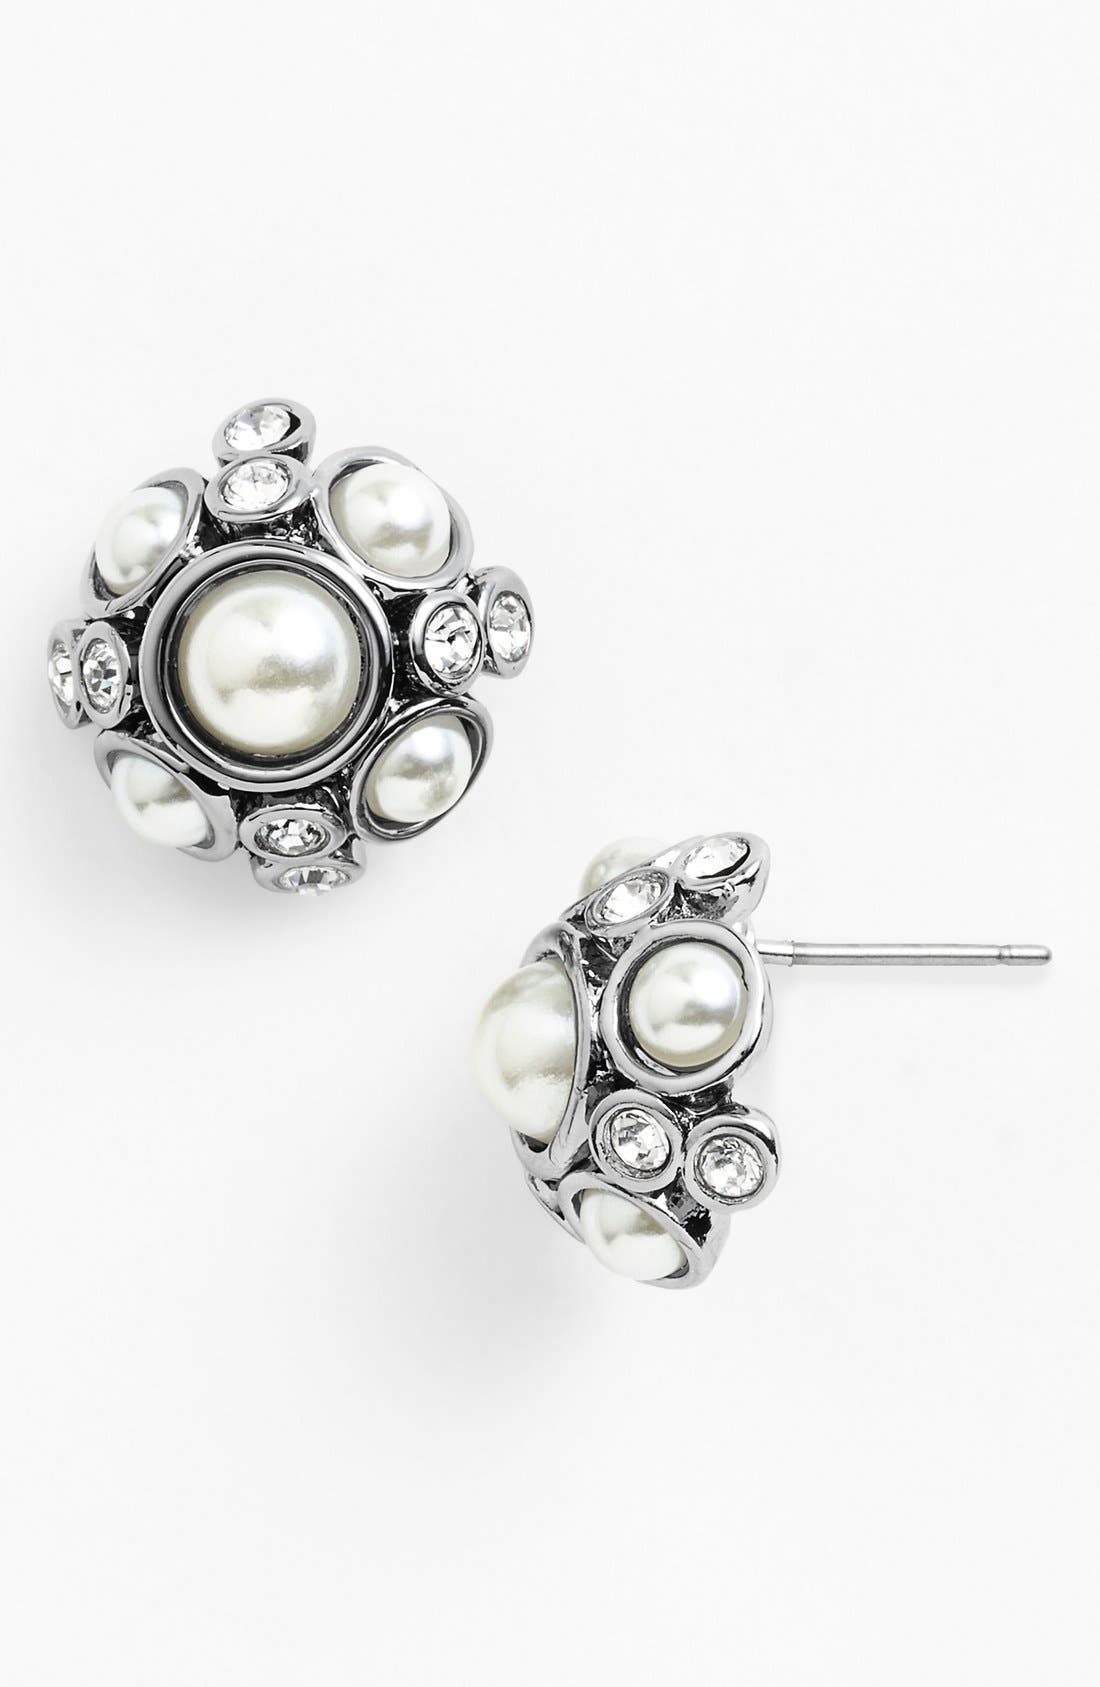 Alternate Image 1 Selected - Givenchy Cluster Stud Earrings (Nordstrom Exclusive)